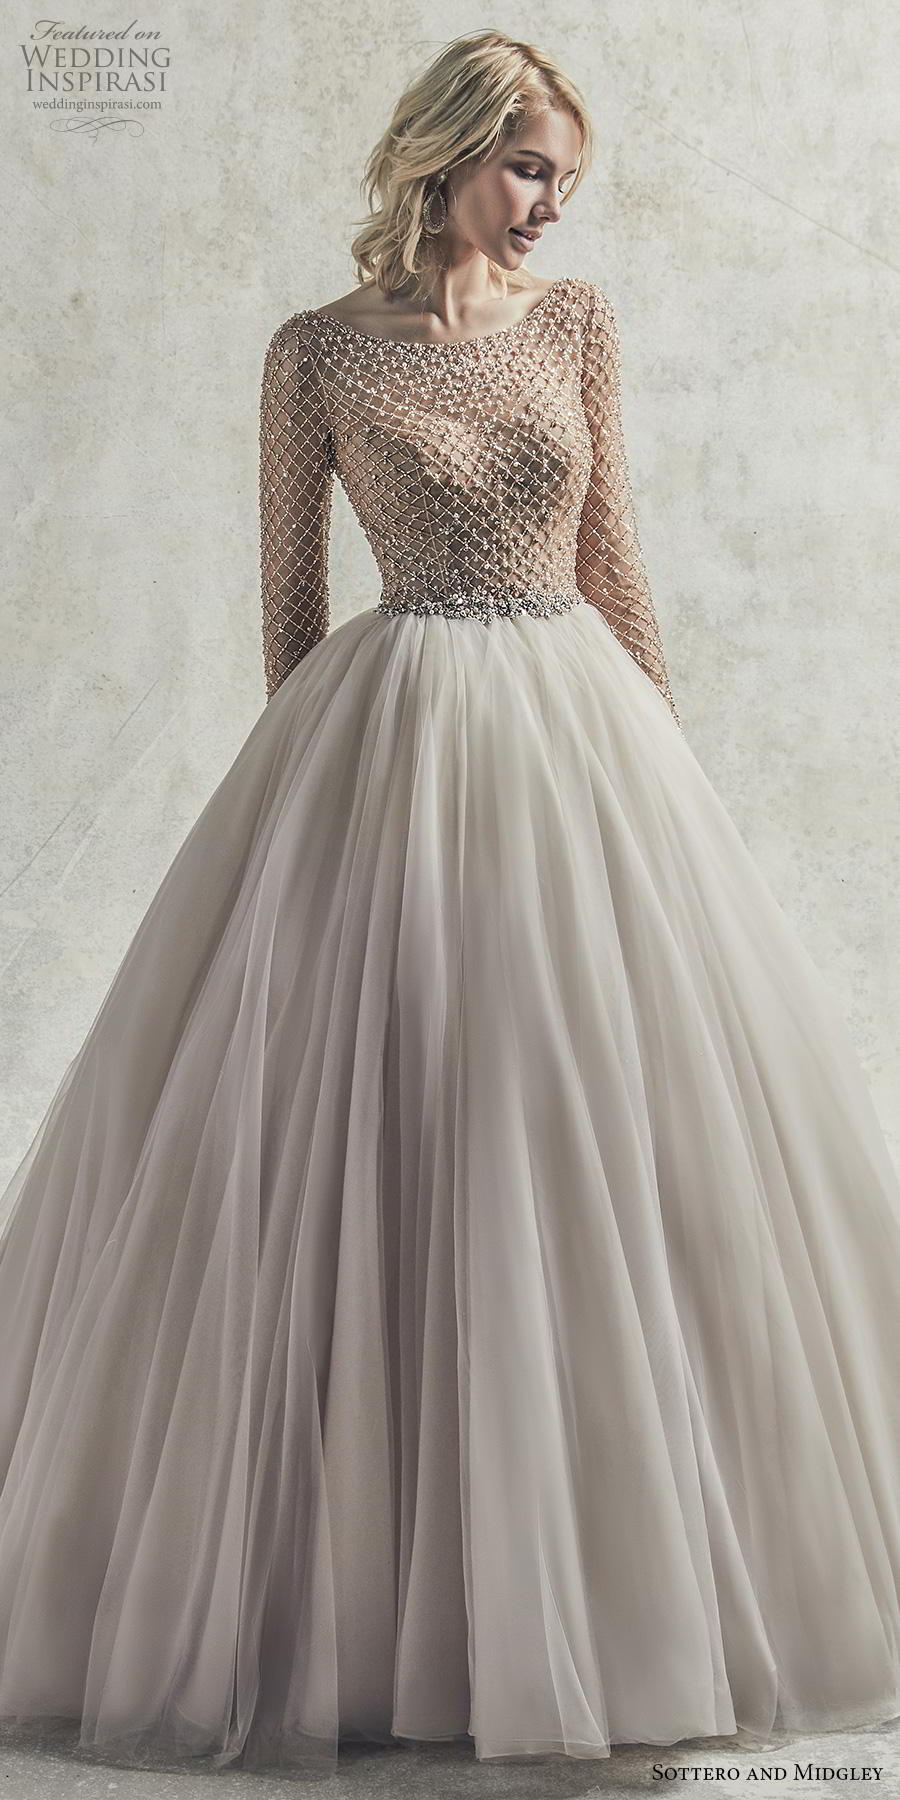 Wedding Dress Trends To Love In 2019 Silhouettes Other Details